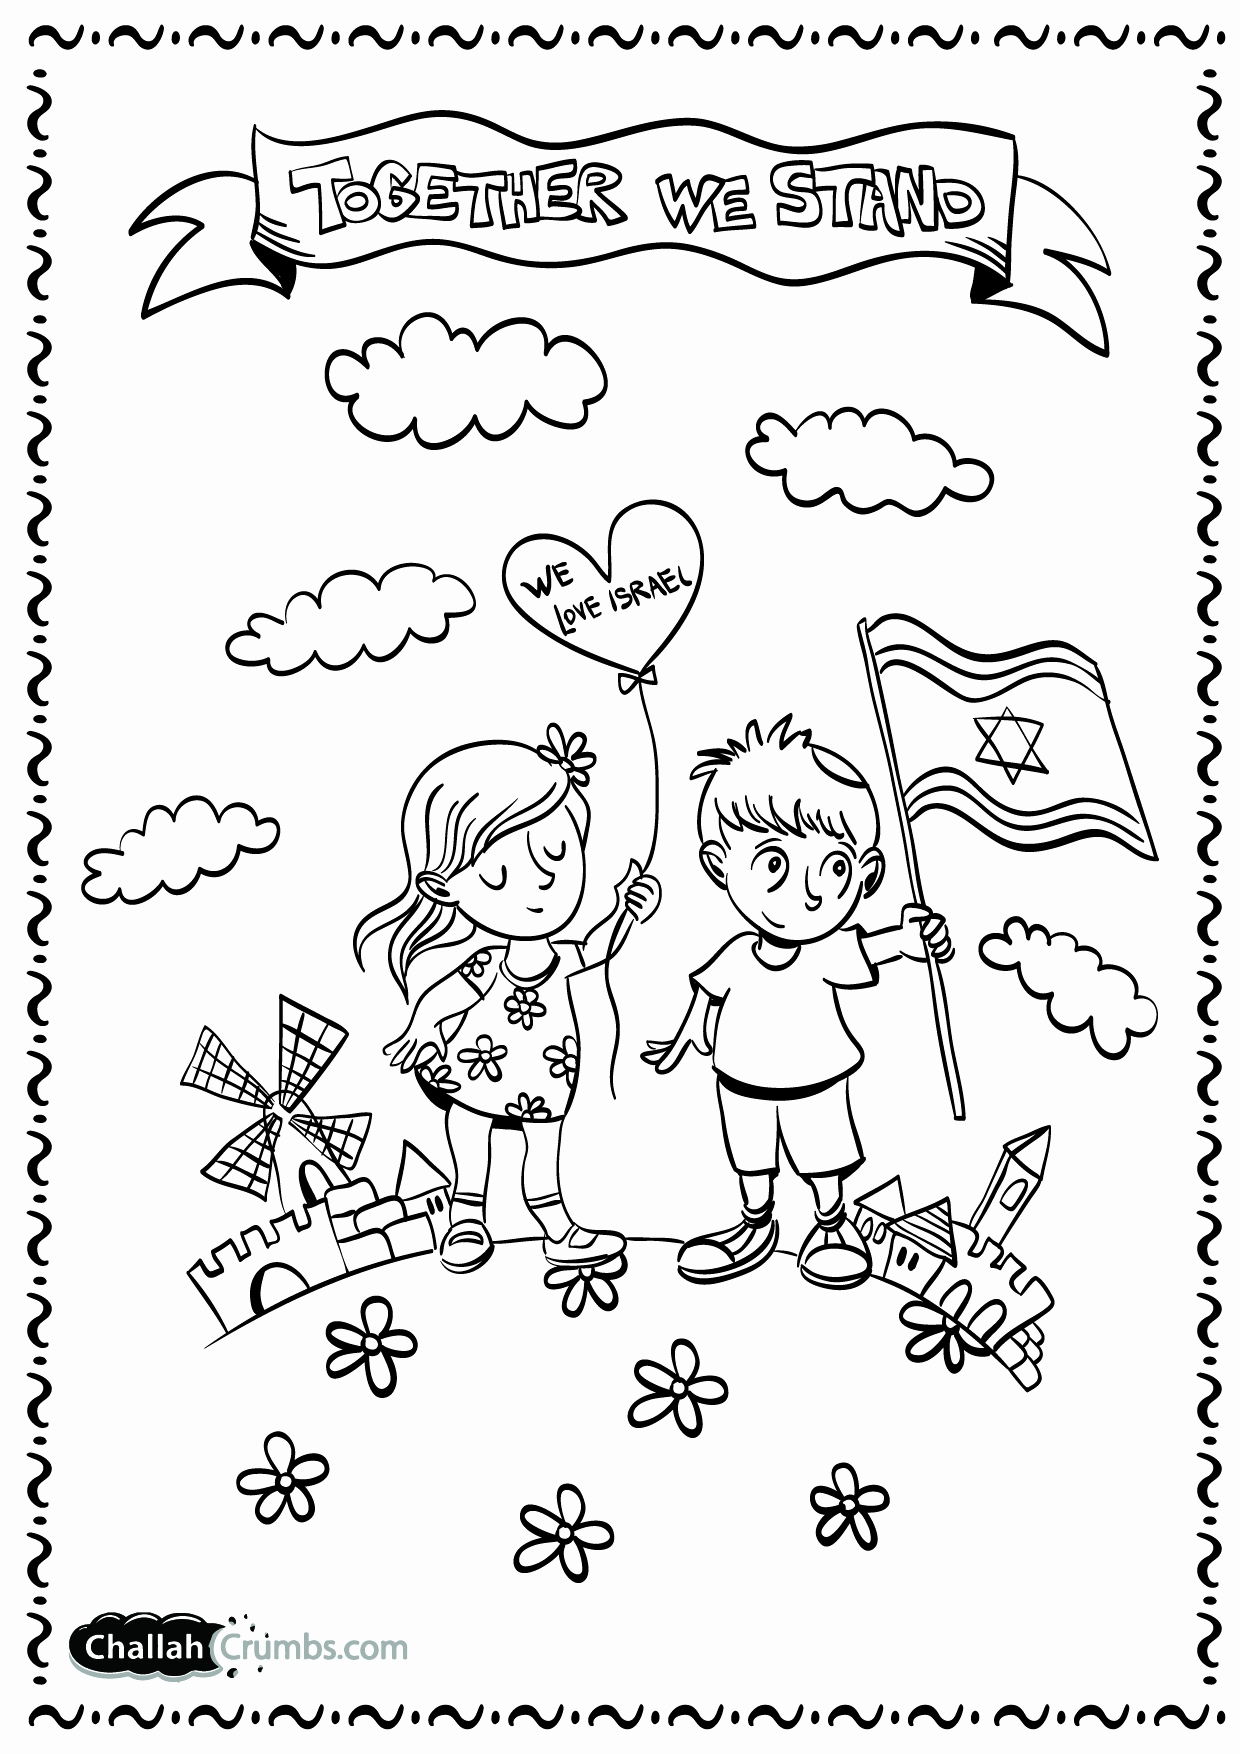 1240x1754 Sukkot Coloring Pages Photograph Yom Haatzmaut Coloring Page